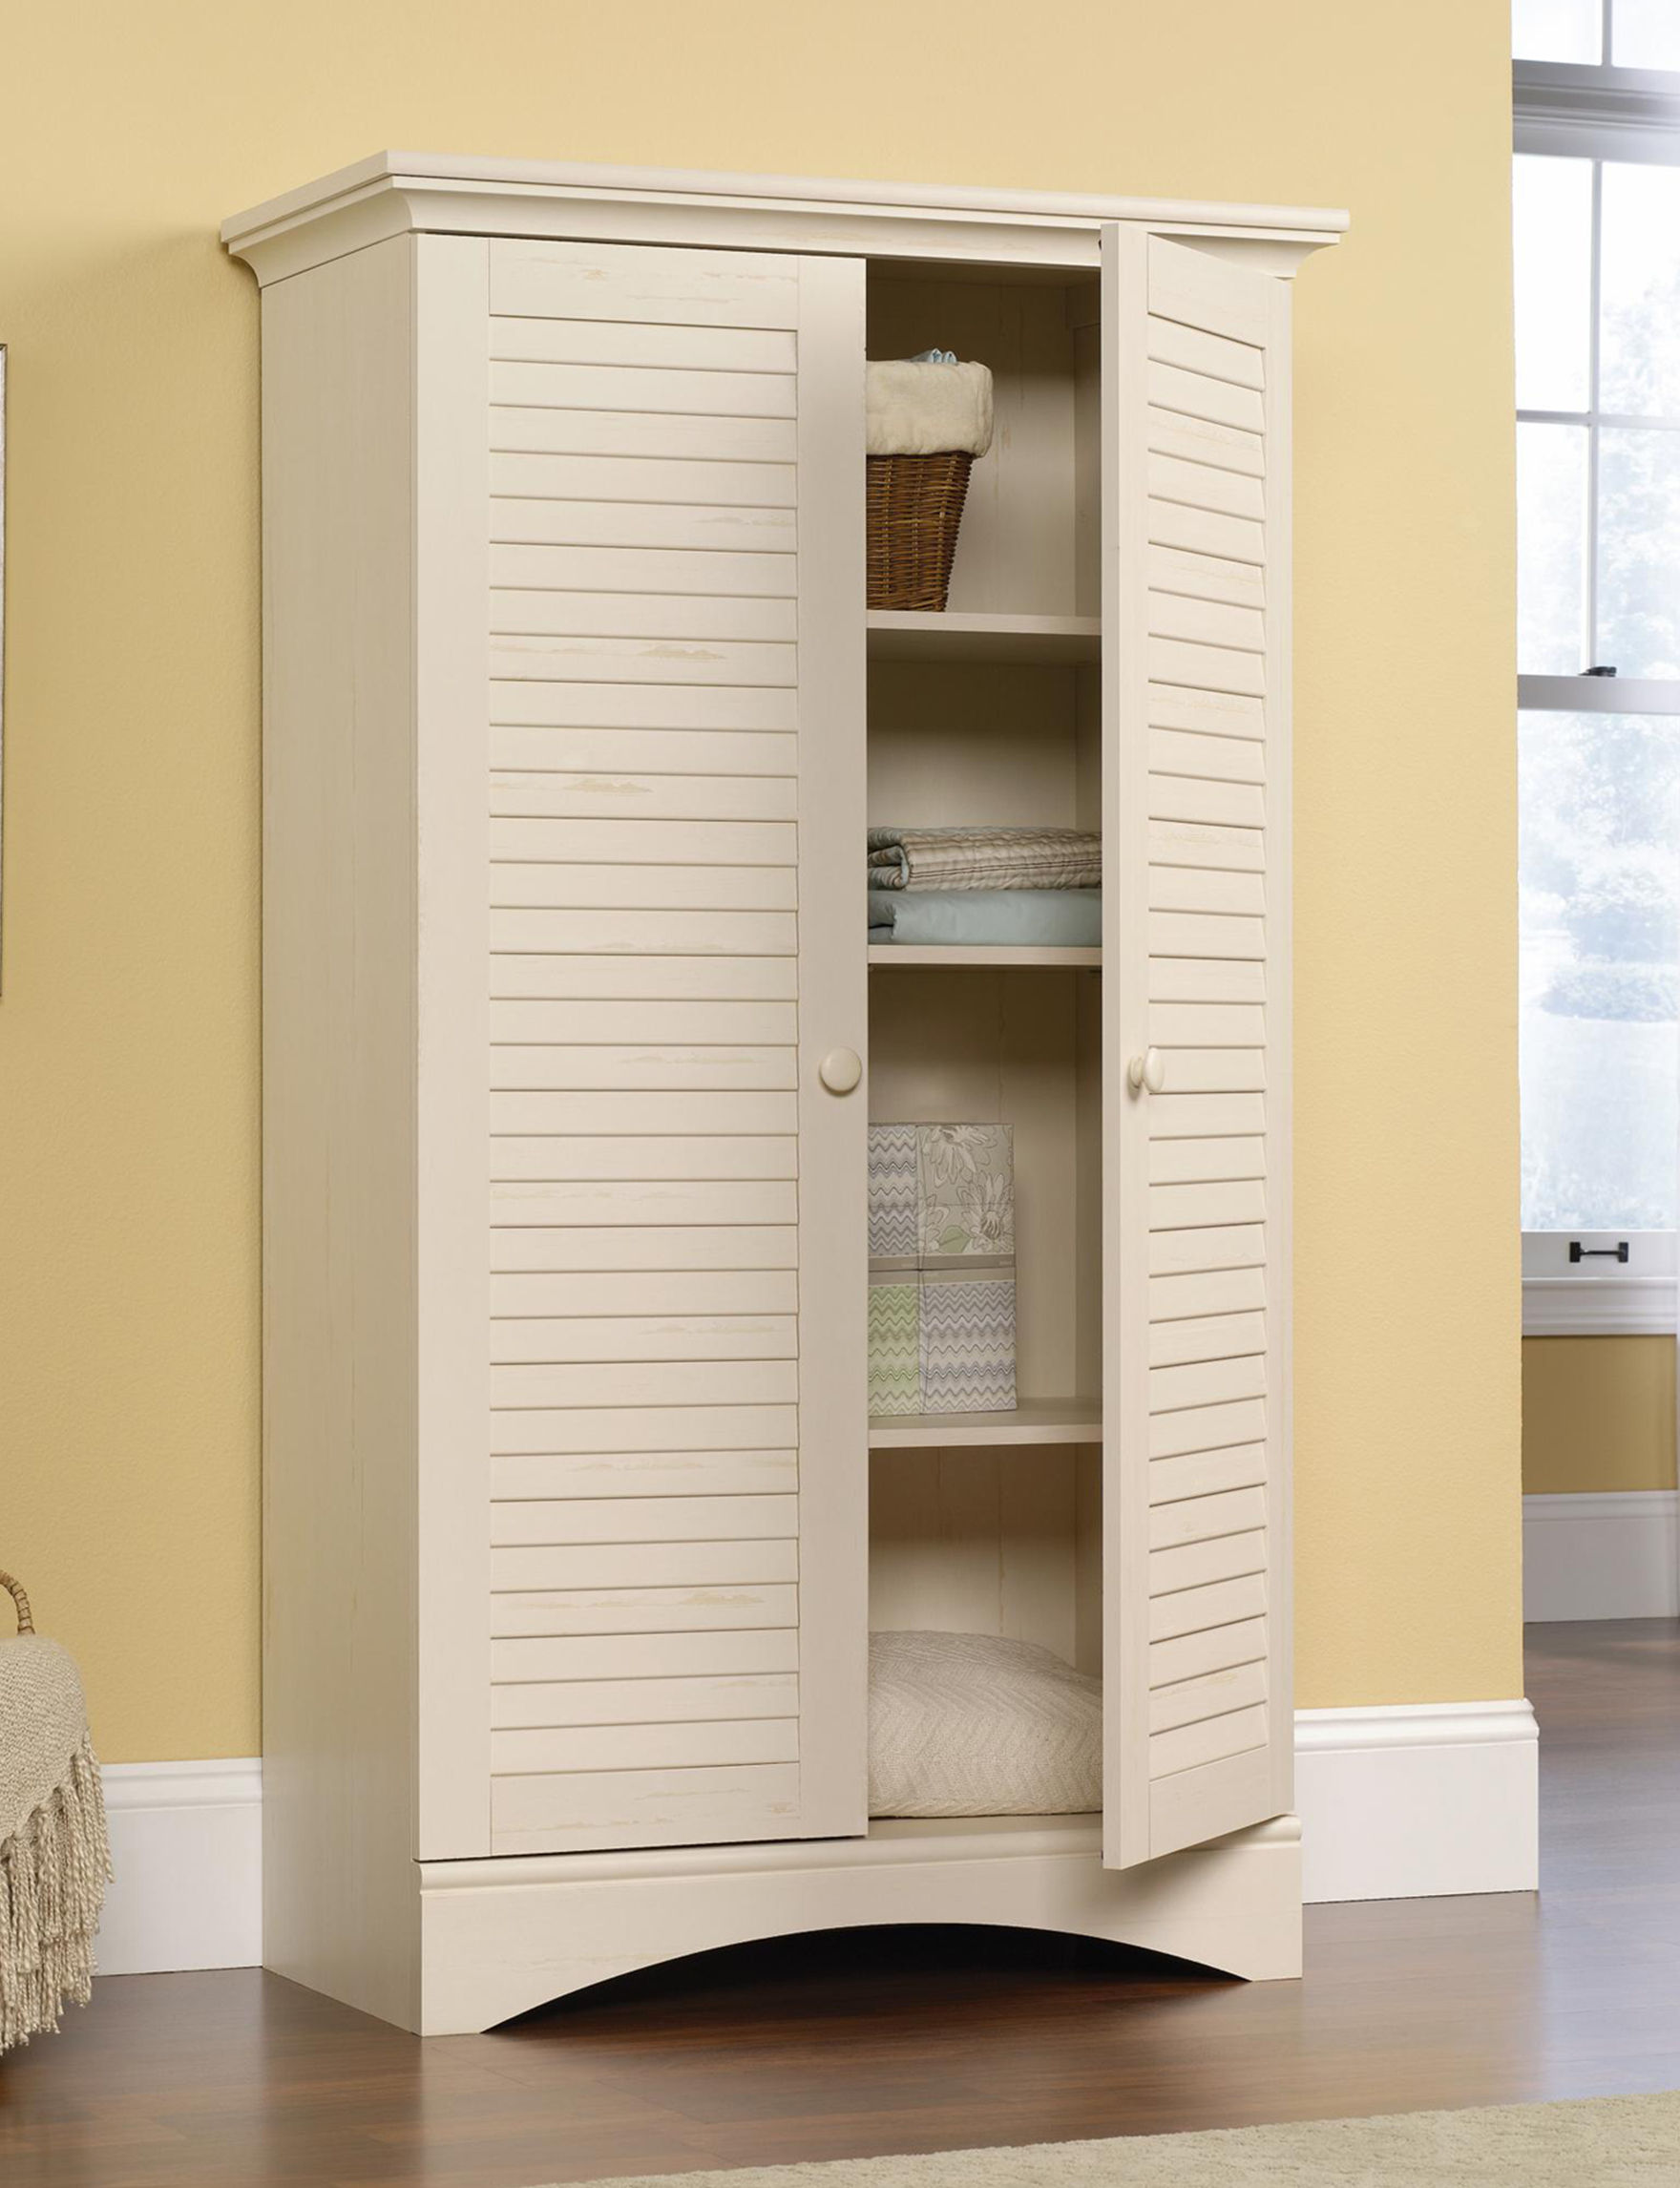 Sauder White Bookcases & Shelves Storage Shelves Bedroom Furniture Home Office Furniture Living Room Furniture